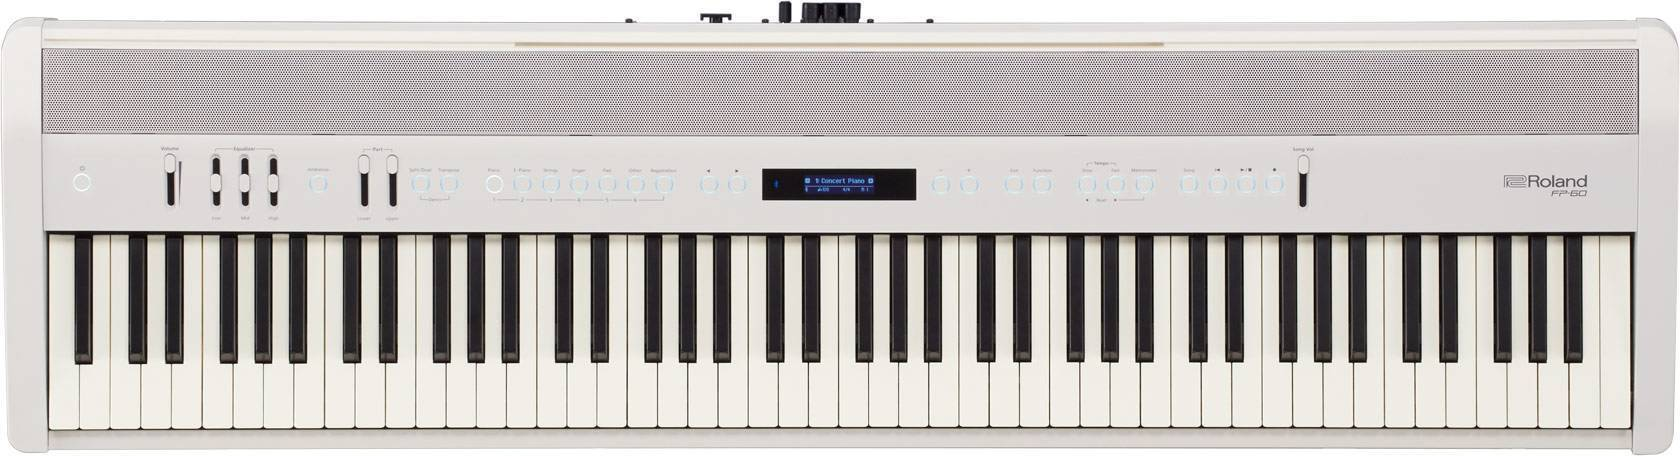 Piano Digital Roland FP-60 Color Blanco